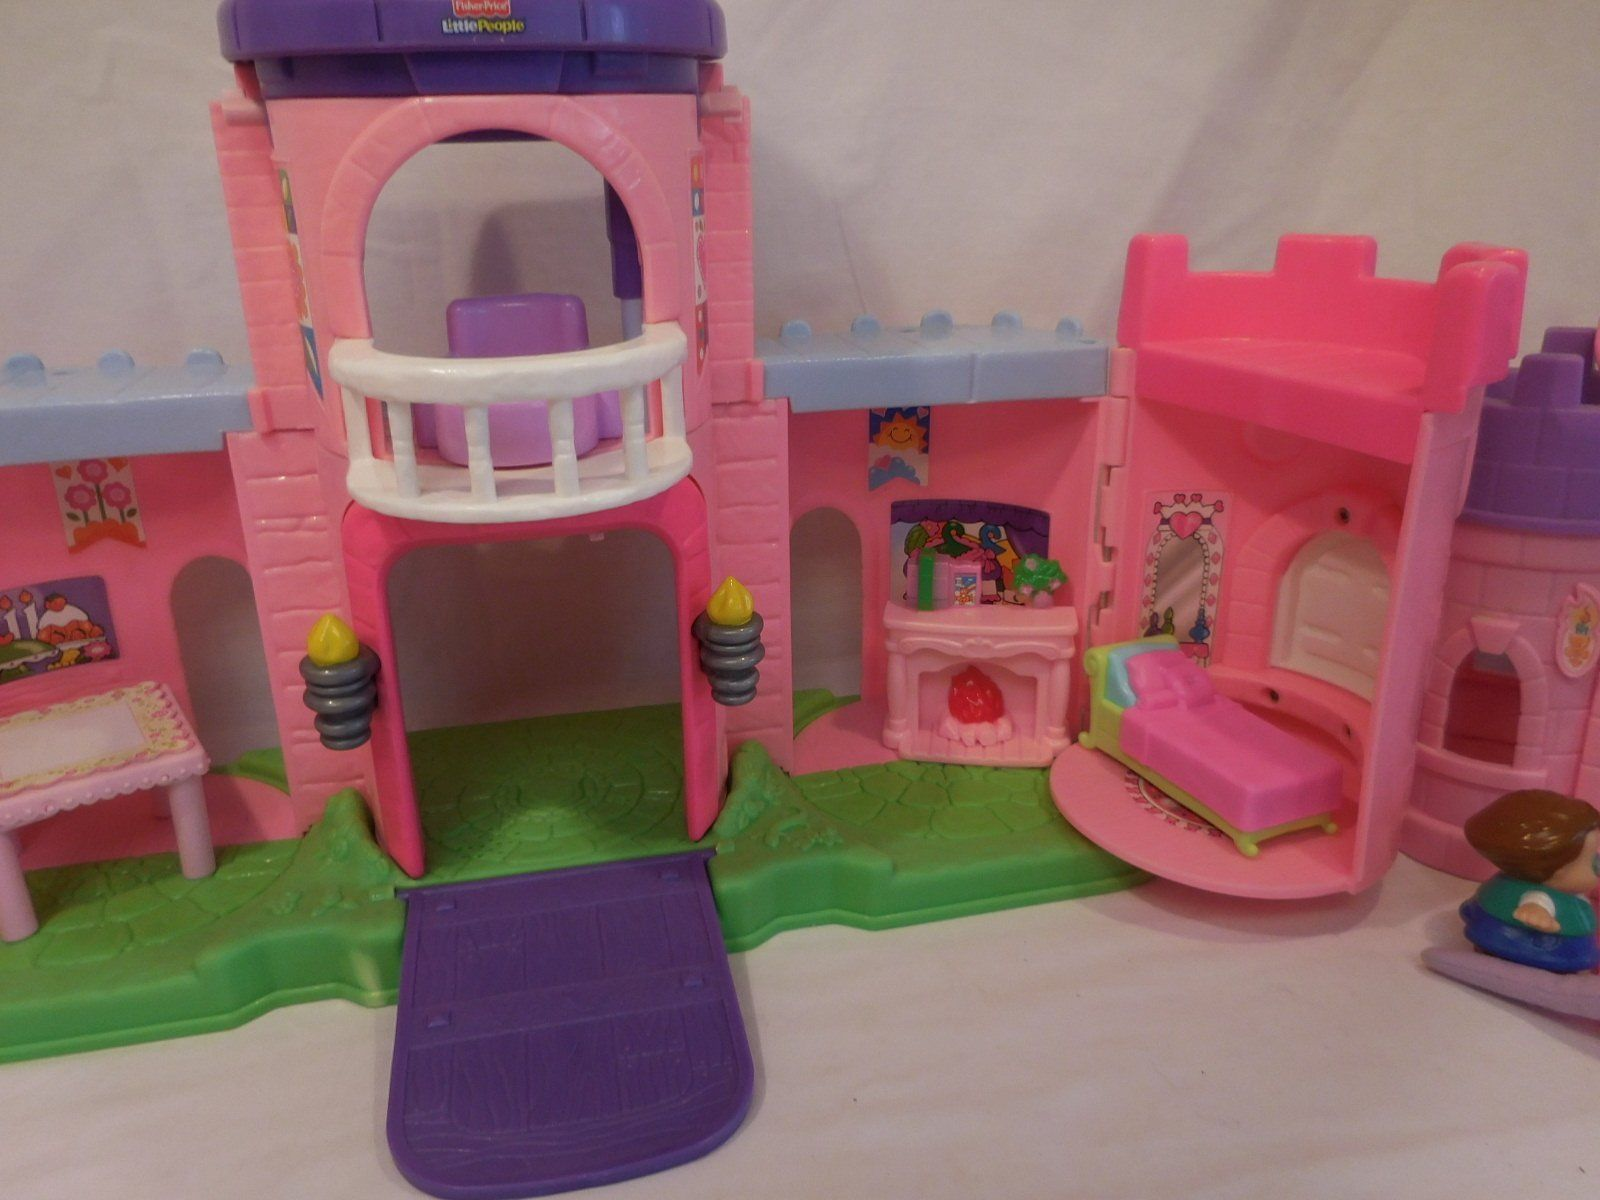 Fisher Price Little People Pink Castle + Play 'N Go Castle + Princess Carriage image 10